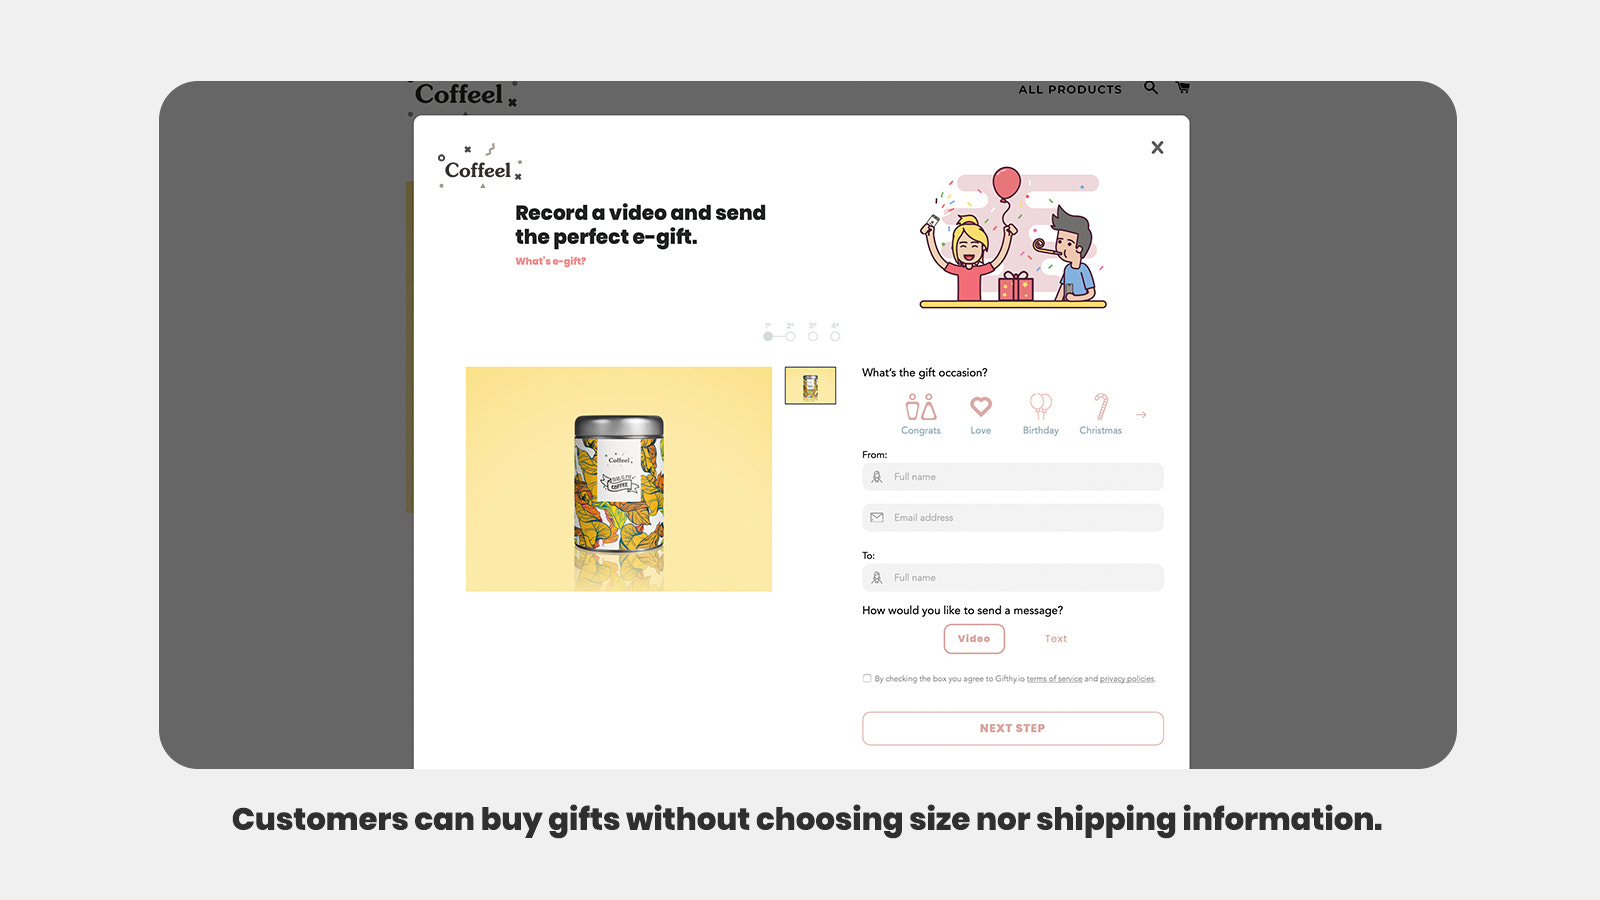 Buying gift without choosing size nor shipping information